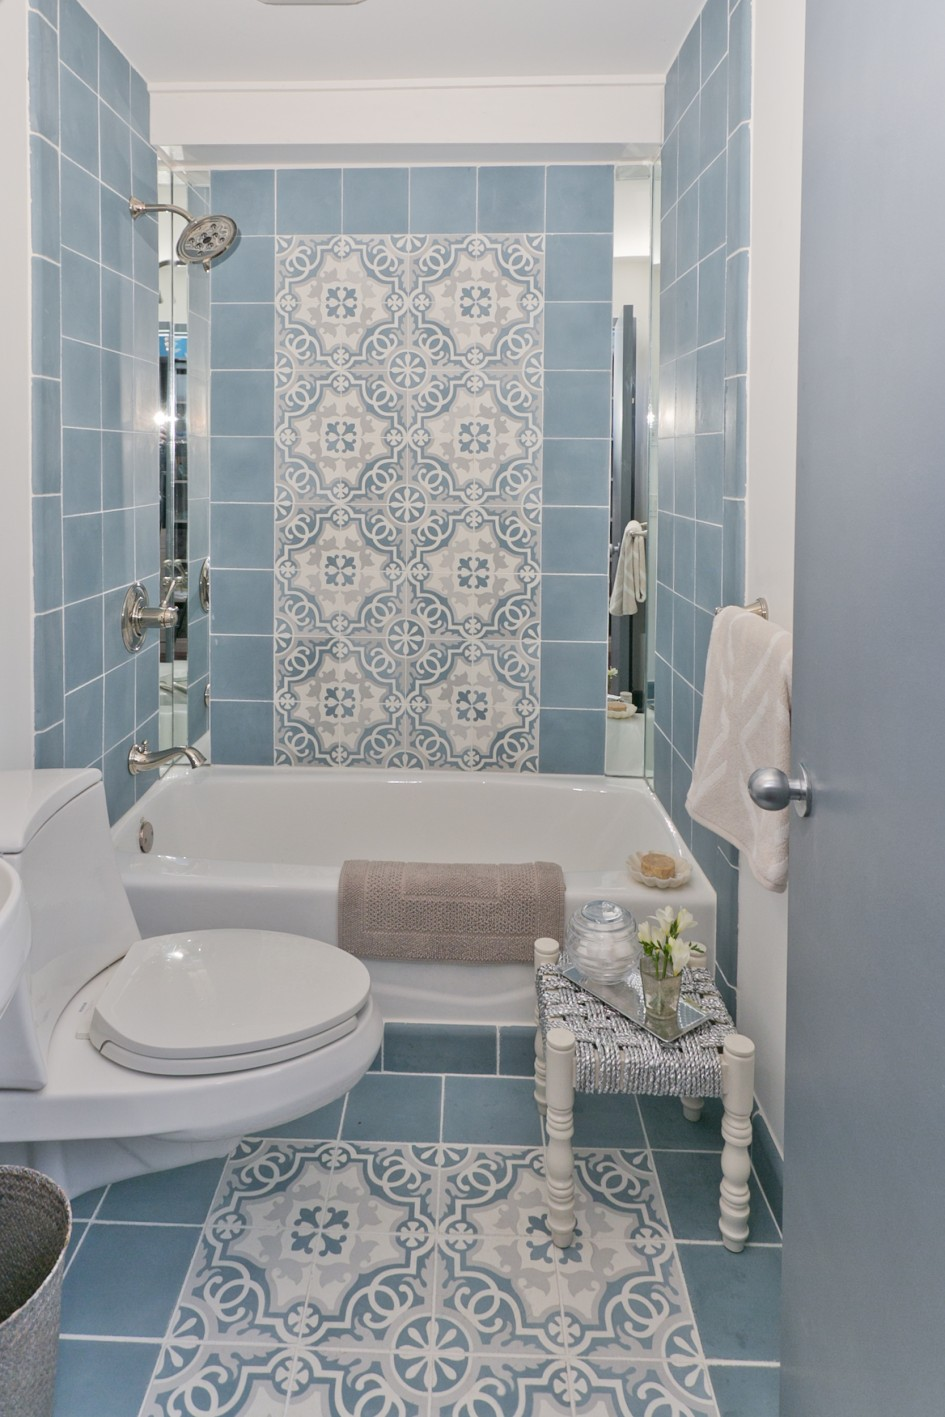 minimalist blue tile pattern bathroom decor also cute bathtub